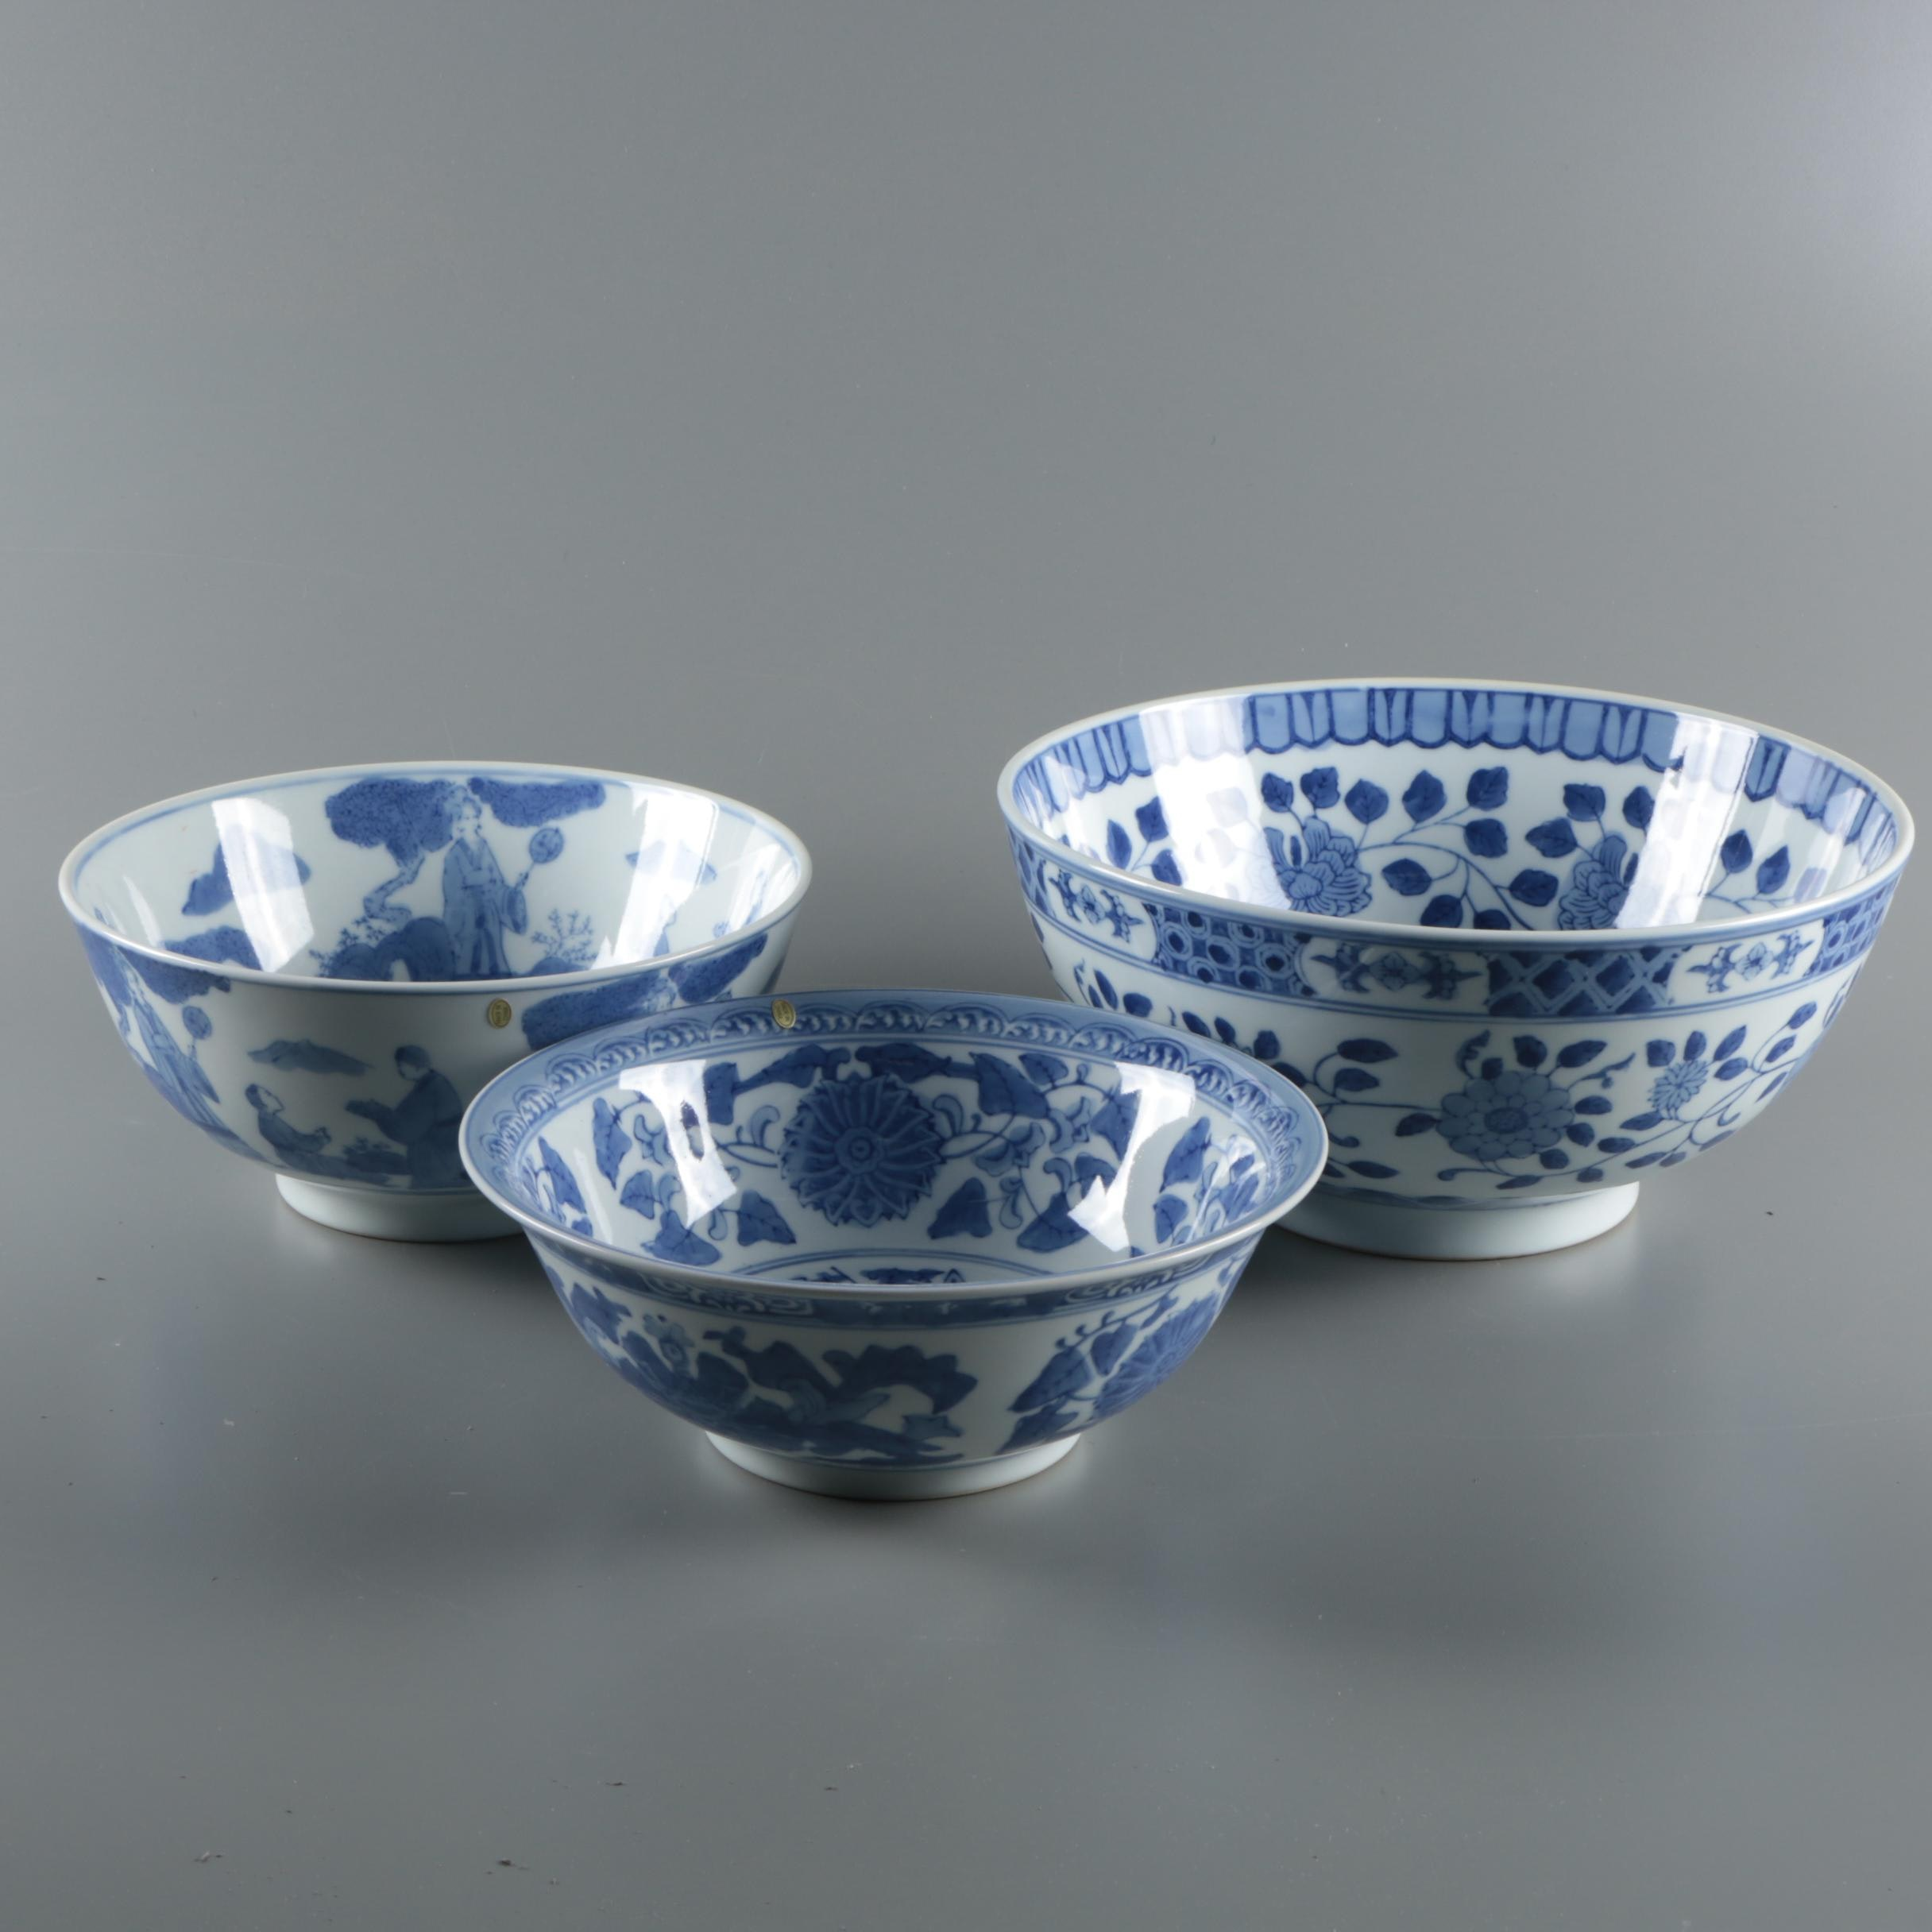 Chinese Export Blue and White Porcelain Bowls